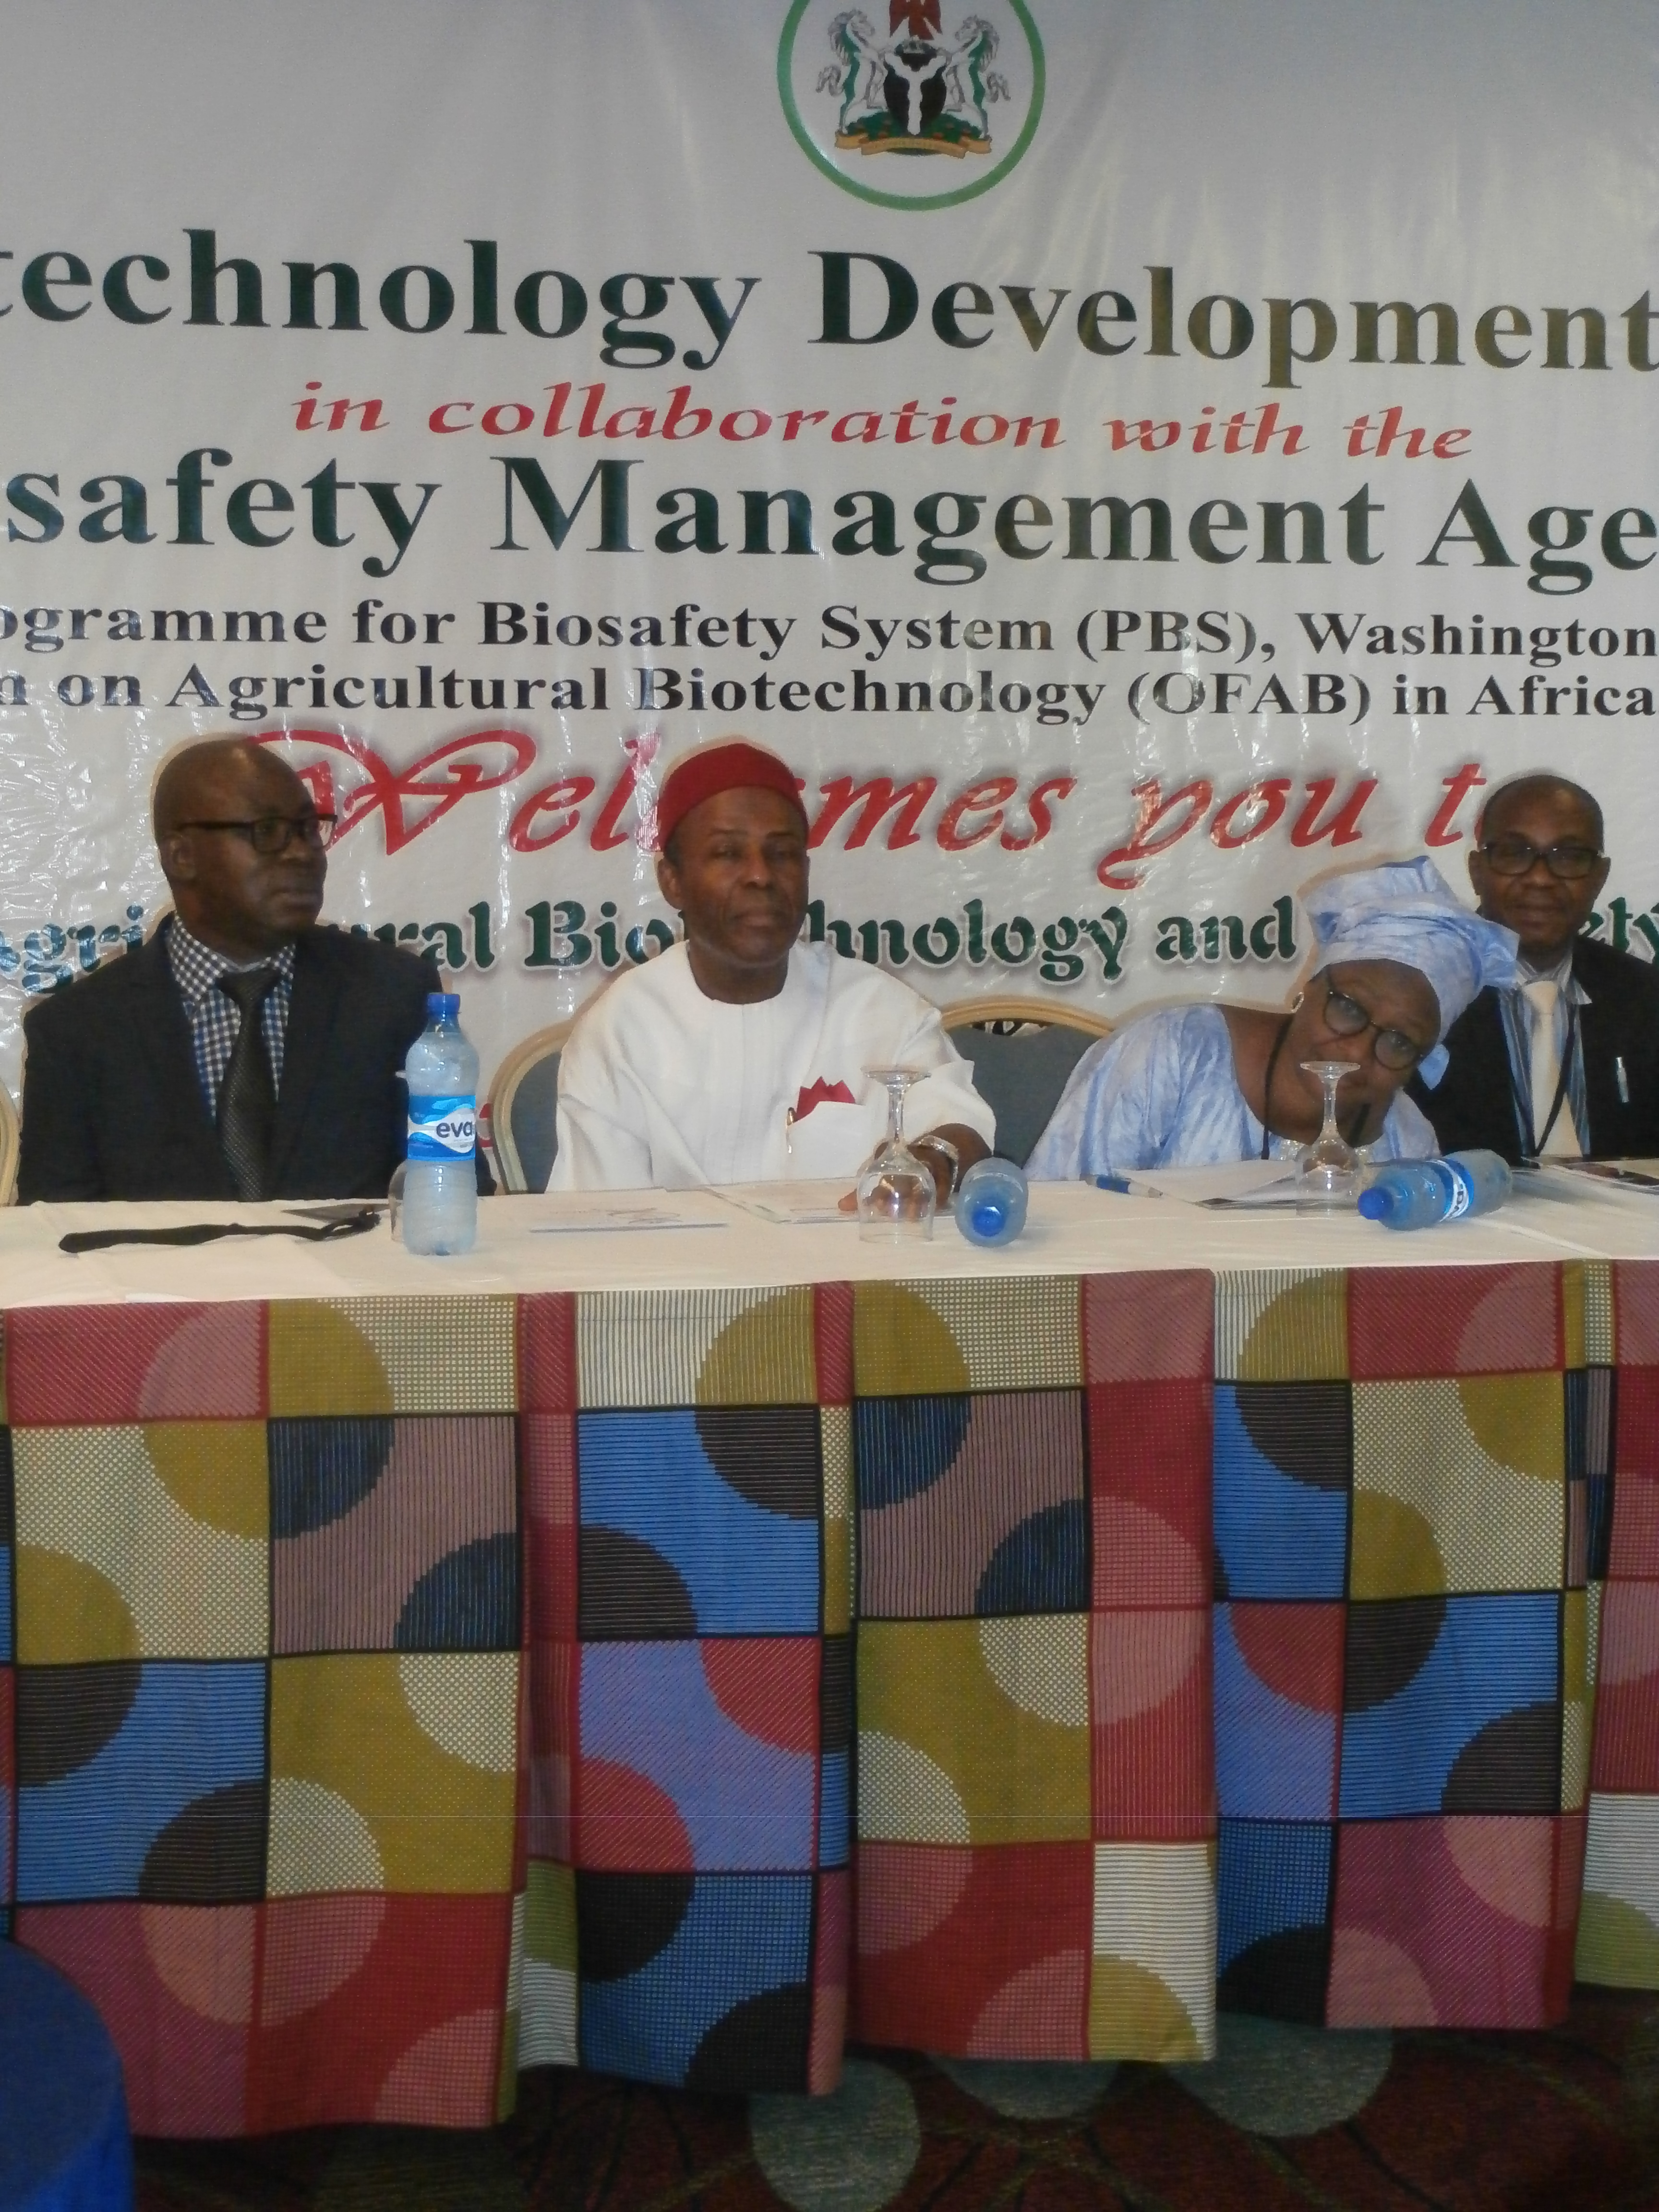 Chairman of the workshop; Dr. Ogbonnaya Onu, Hon Minister of Science and Technology flanked on the left by DG/CEO NABDA, Prof. Lucy Jumeyi Ogbadu and on the left by DG/CEO NBMA, Dr. Rufus Edegba NABMA.